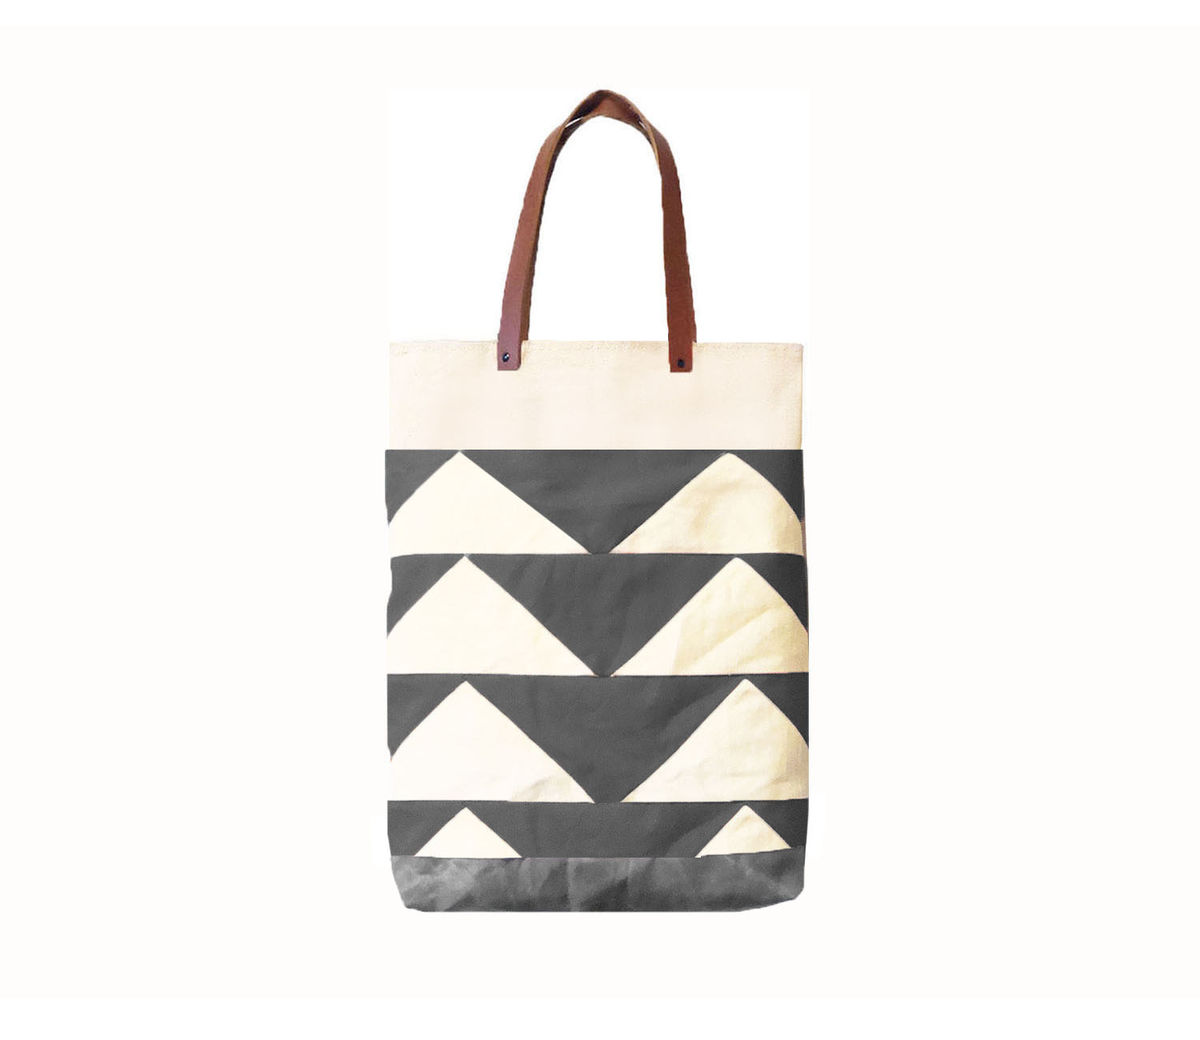 Convertible Tote, Backpack w/ Leather Straps - Bunting Triangle Charcoal - product images  of